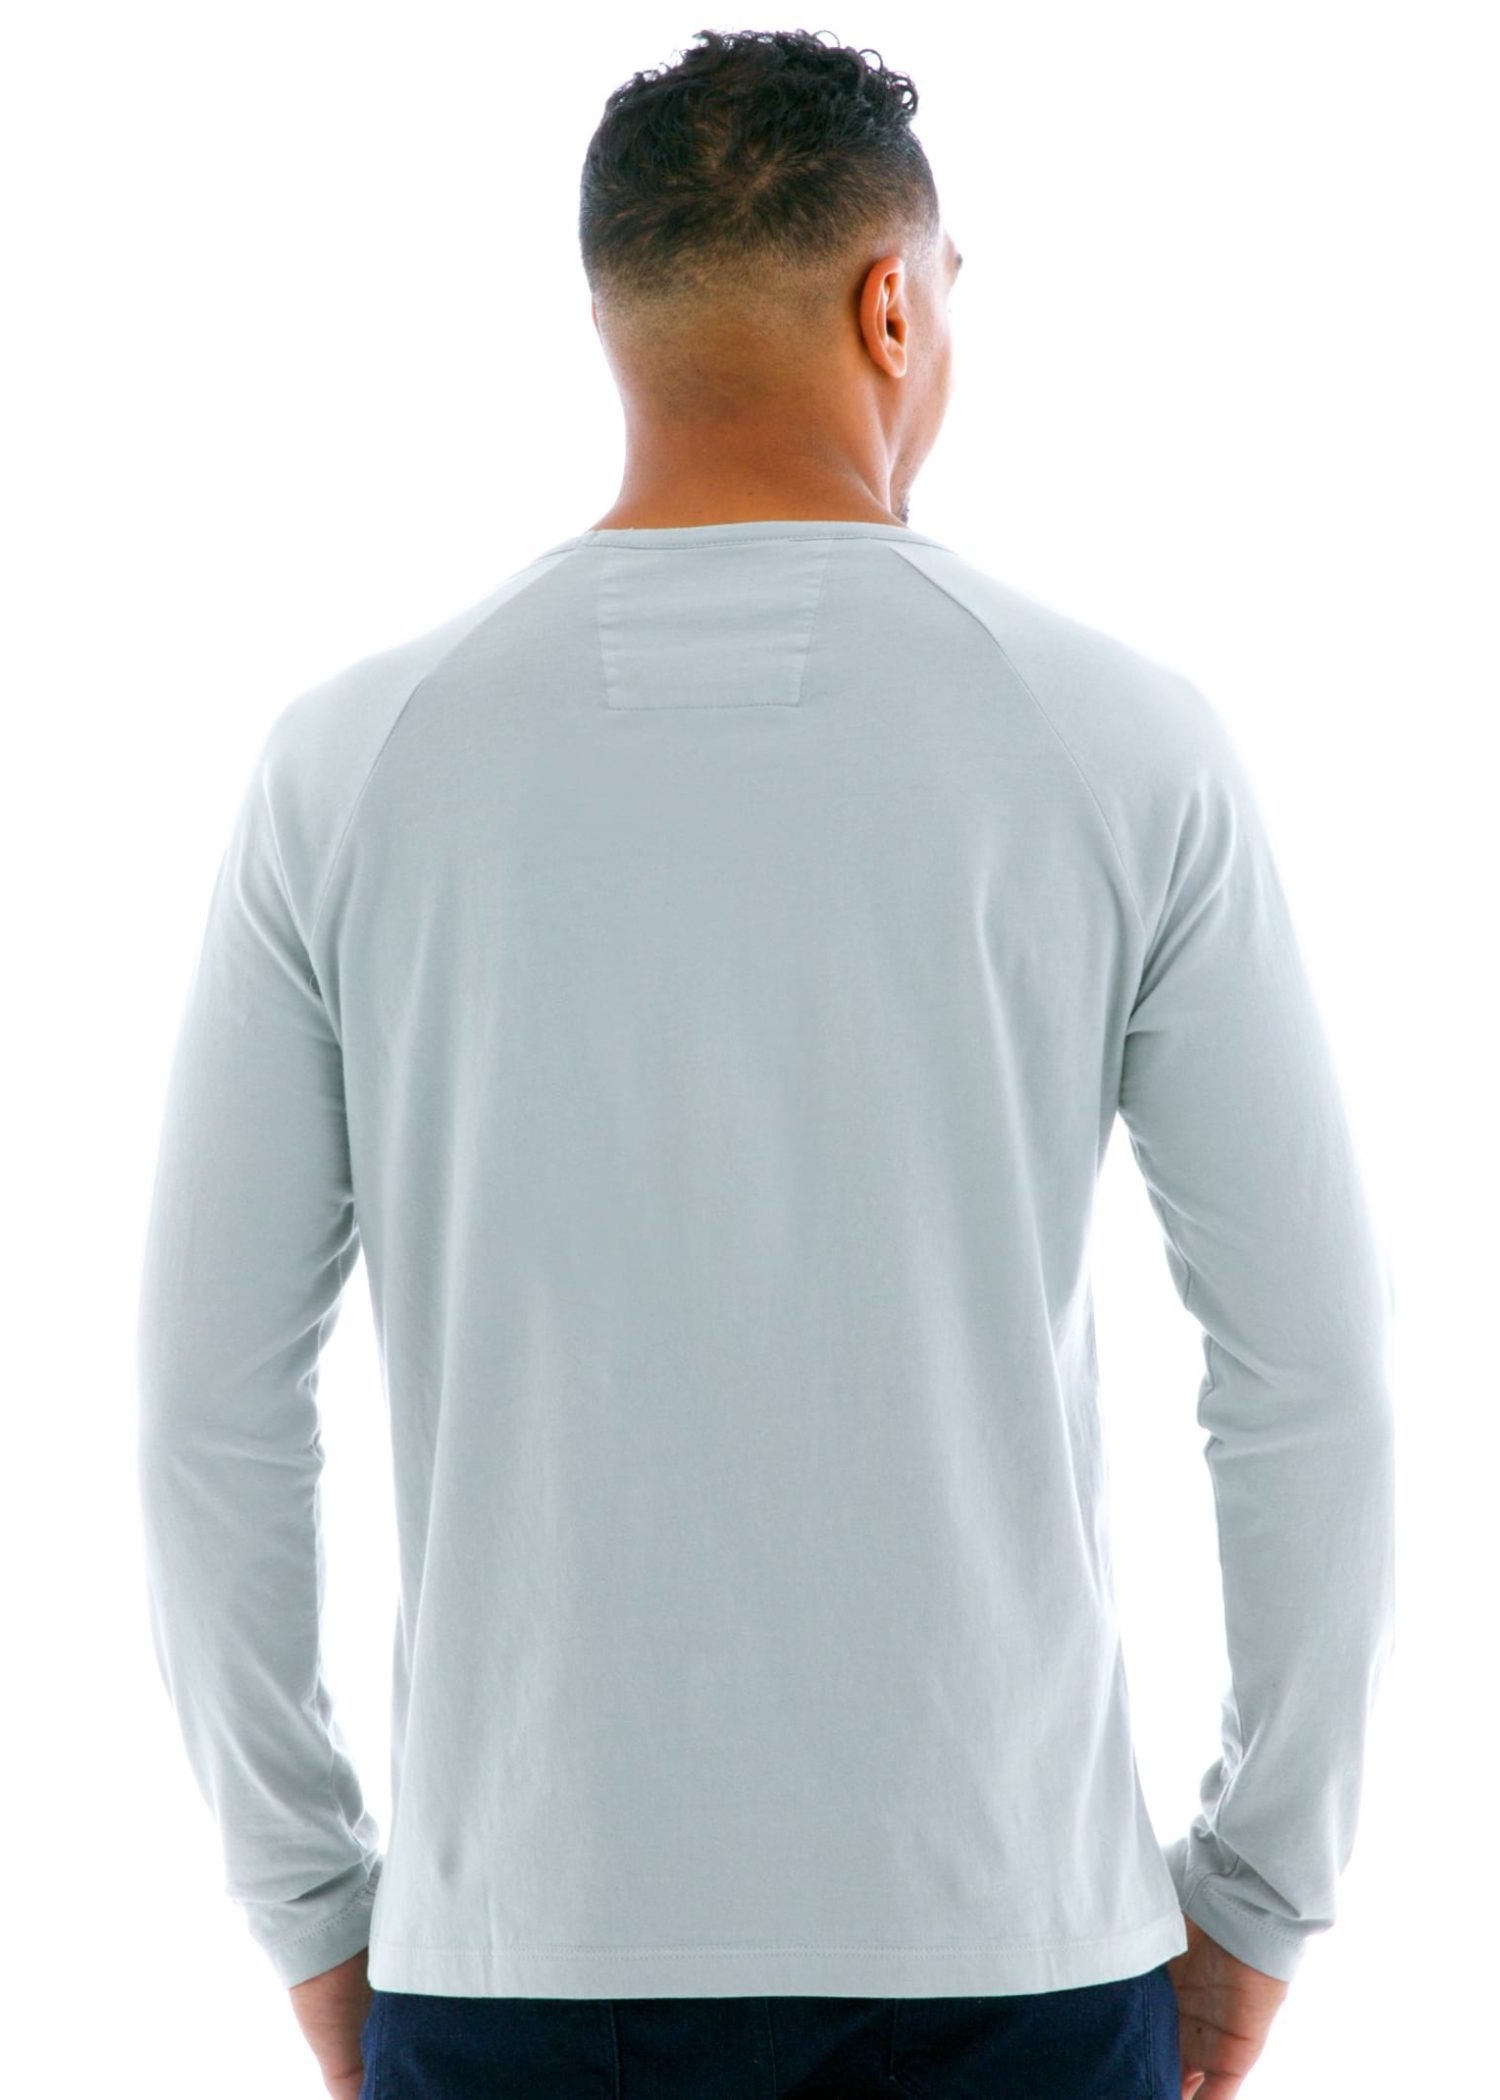 Men's Long Sleeve Raglan Crew T-Shirt